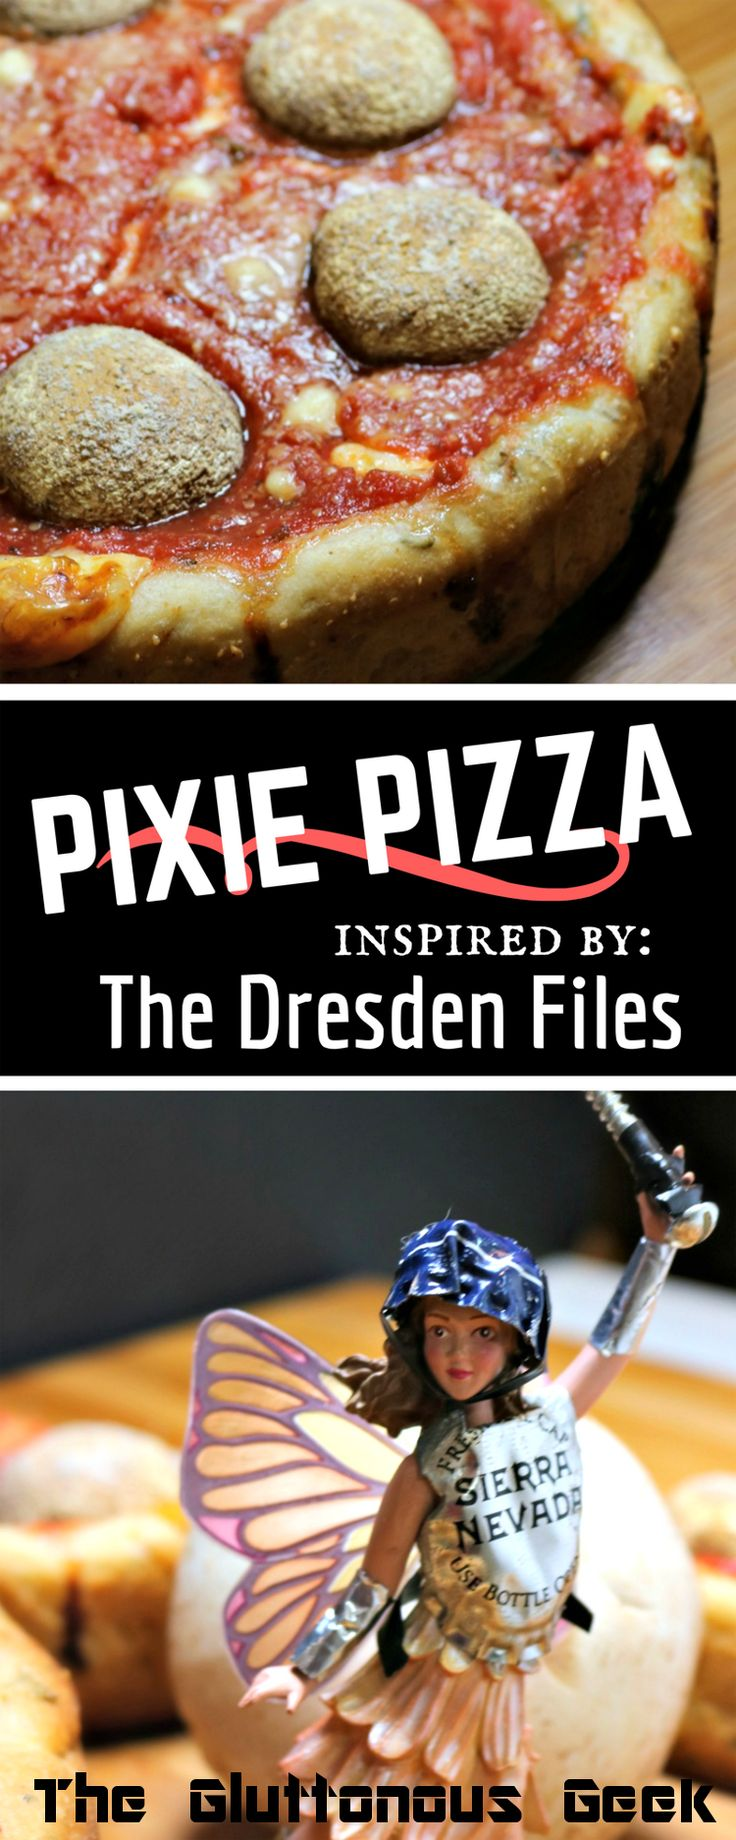 This Chicago-style deep dish pizza chock full of mushrooms and fresh thyme is inspired by everyone's favorite pixie from The Dresden Files.